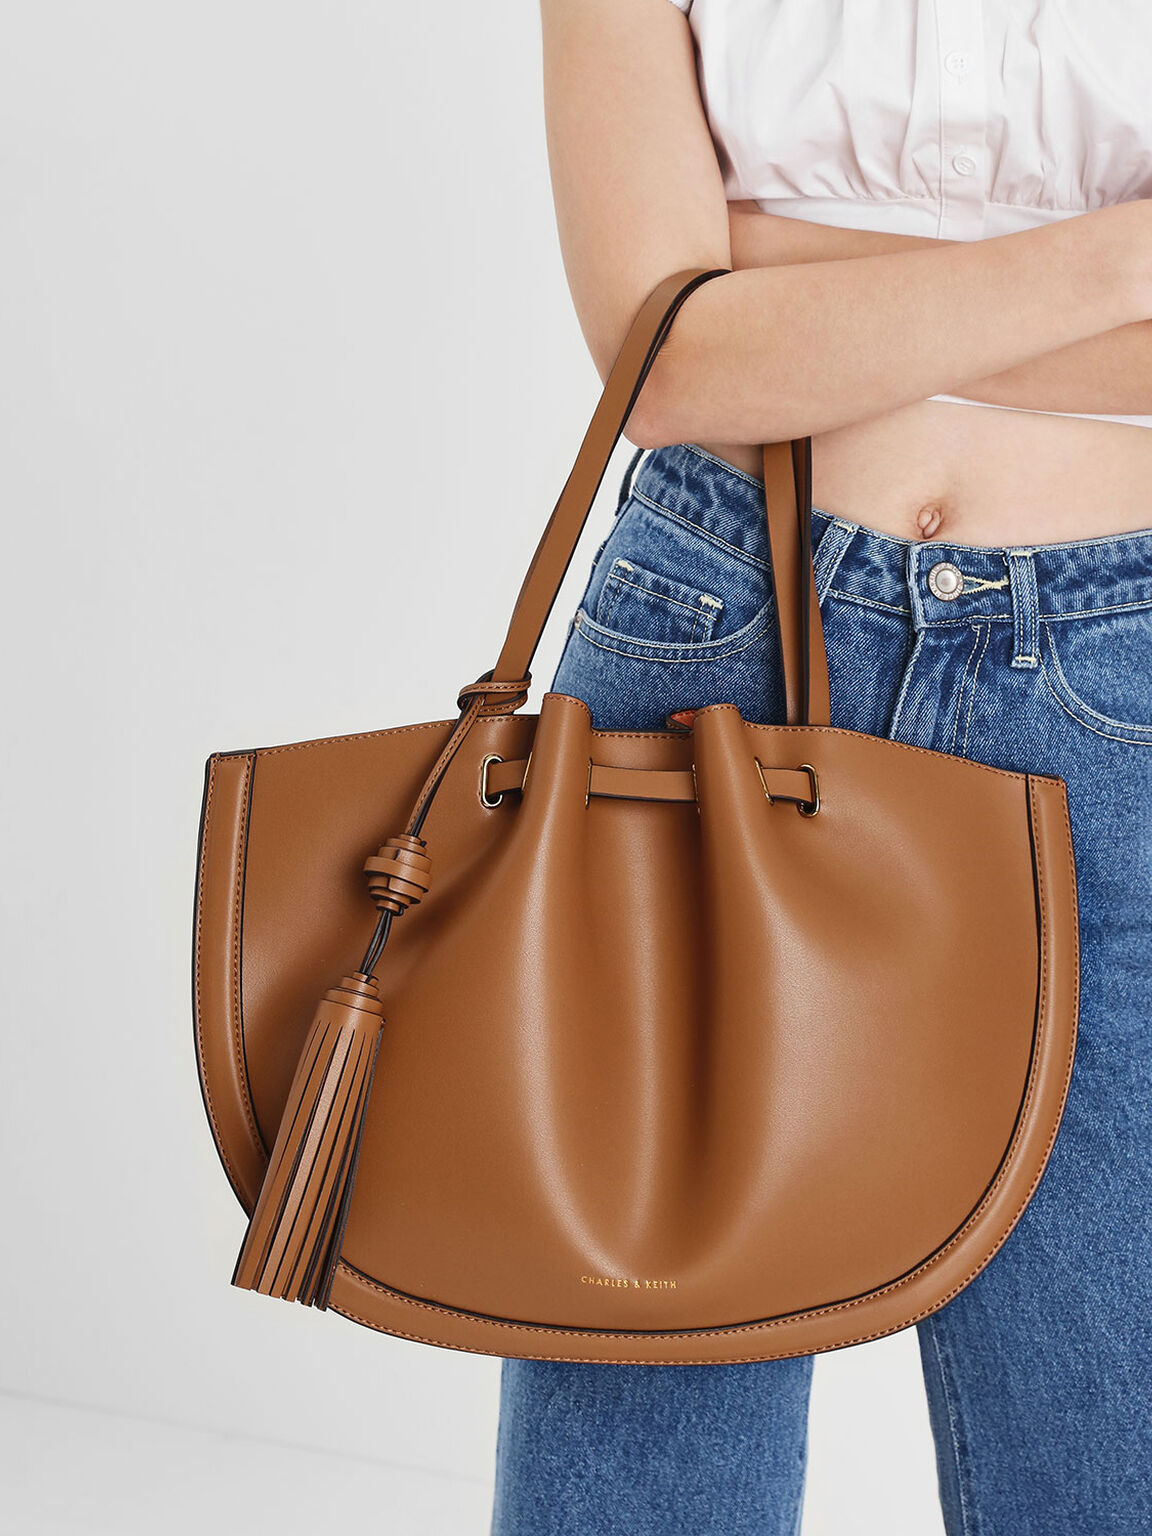 Tassel Tote Bag, Tan, hi-res